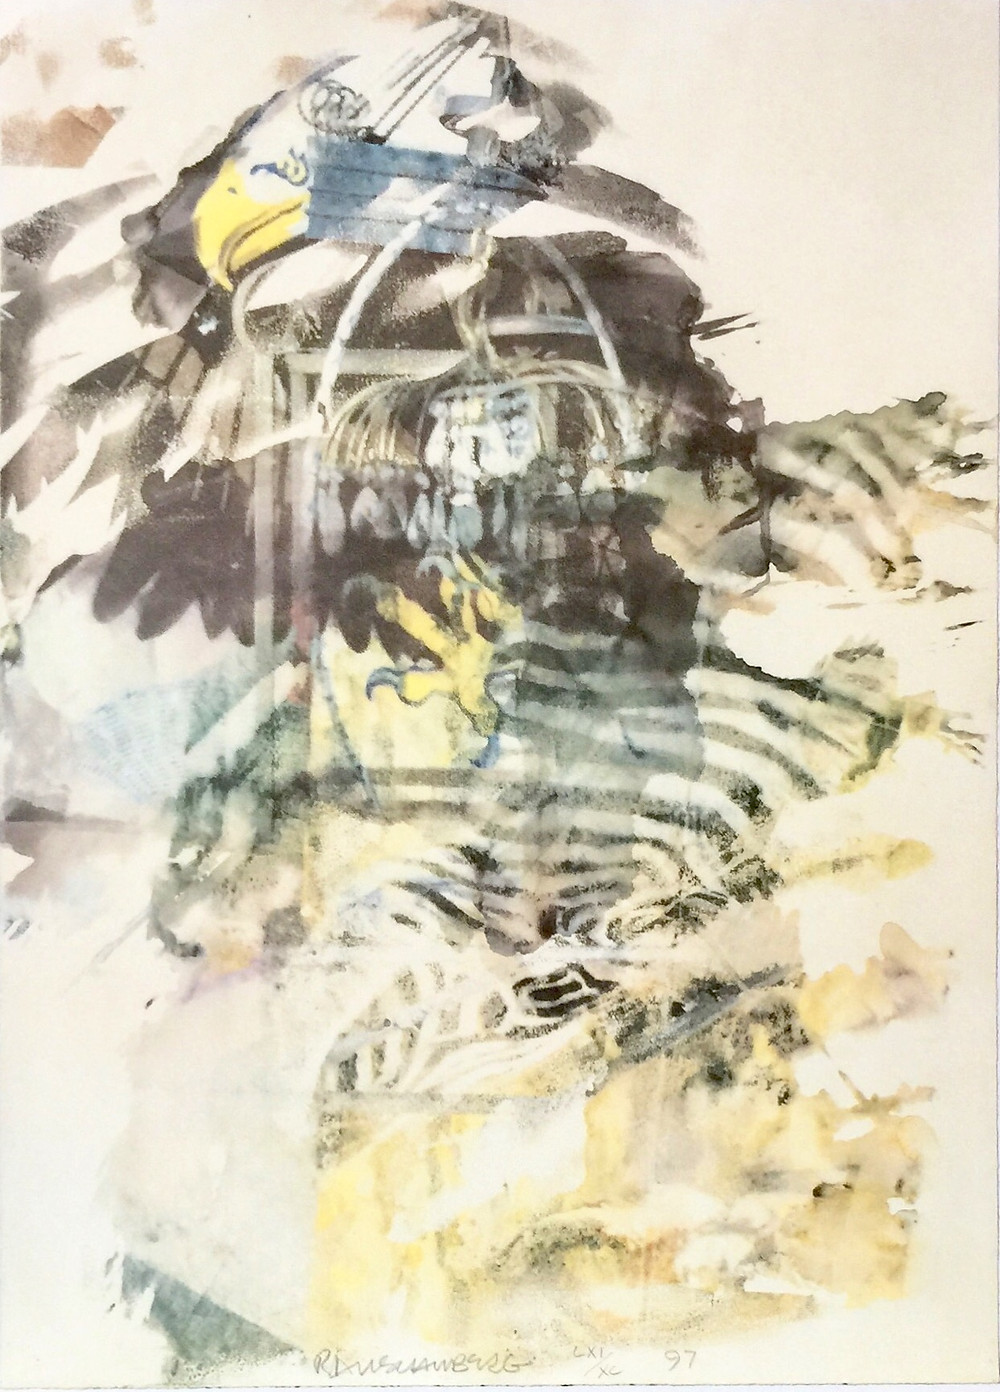 "Caucus, 1997; Lithograph on Arches paper; Signed Rauschenberg, numbered LXI/XC, and dated '97 lower center; Published by Noblet Serigraphie, Inc., New York; Size - Sheet 37 x 27""; Unframed."